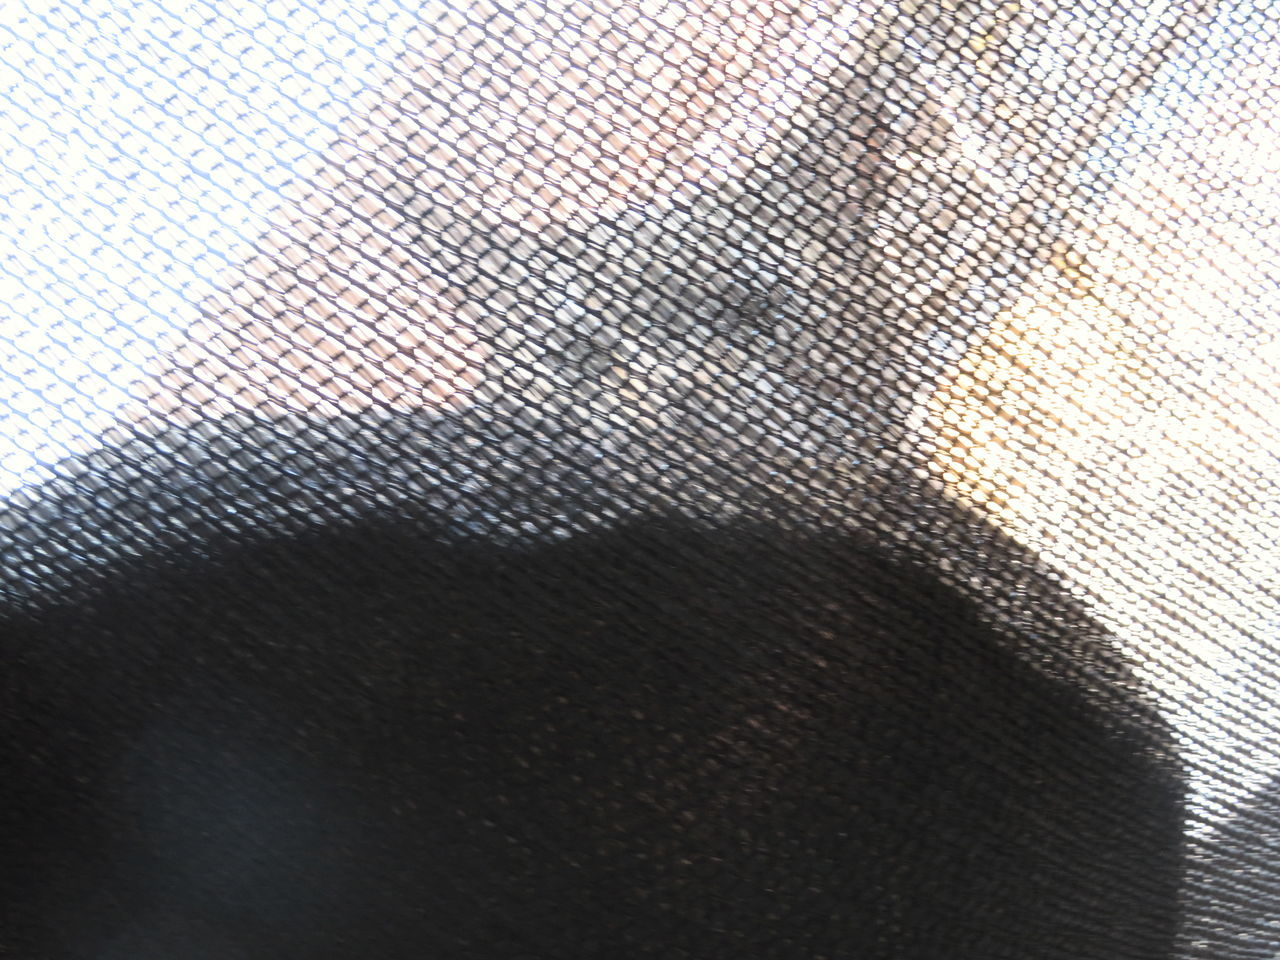 indoors, textured, close-up, fabric, full frame, backgrounds, no people, day